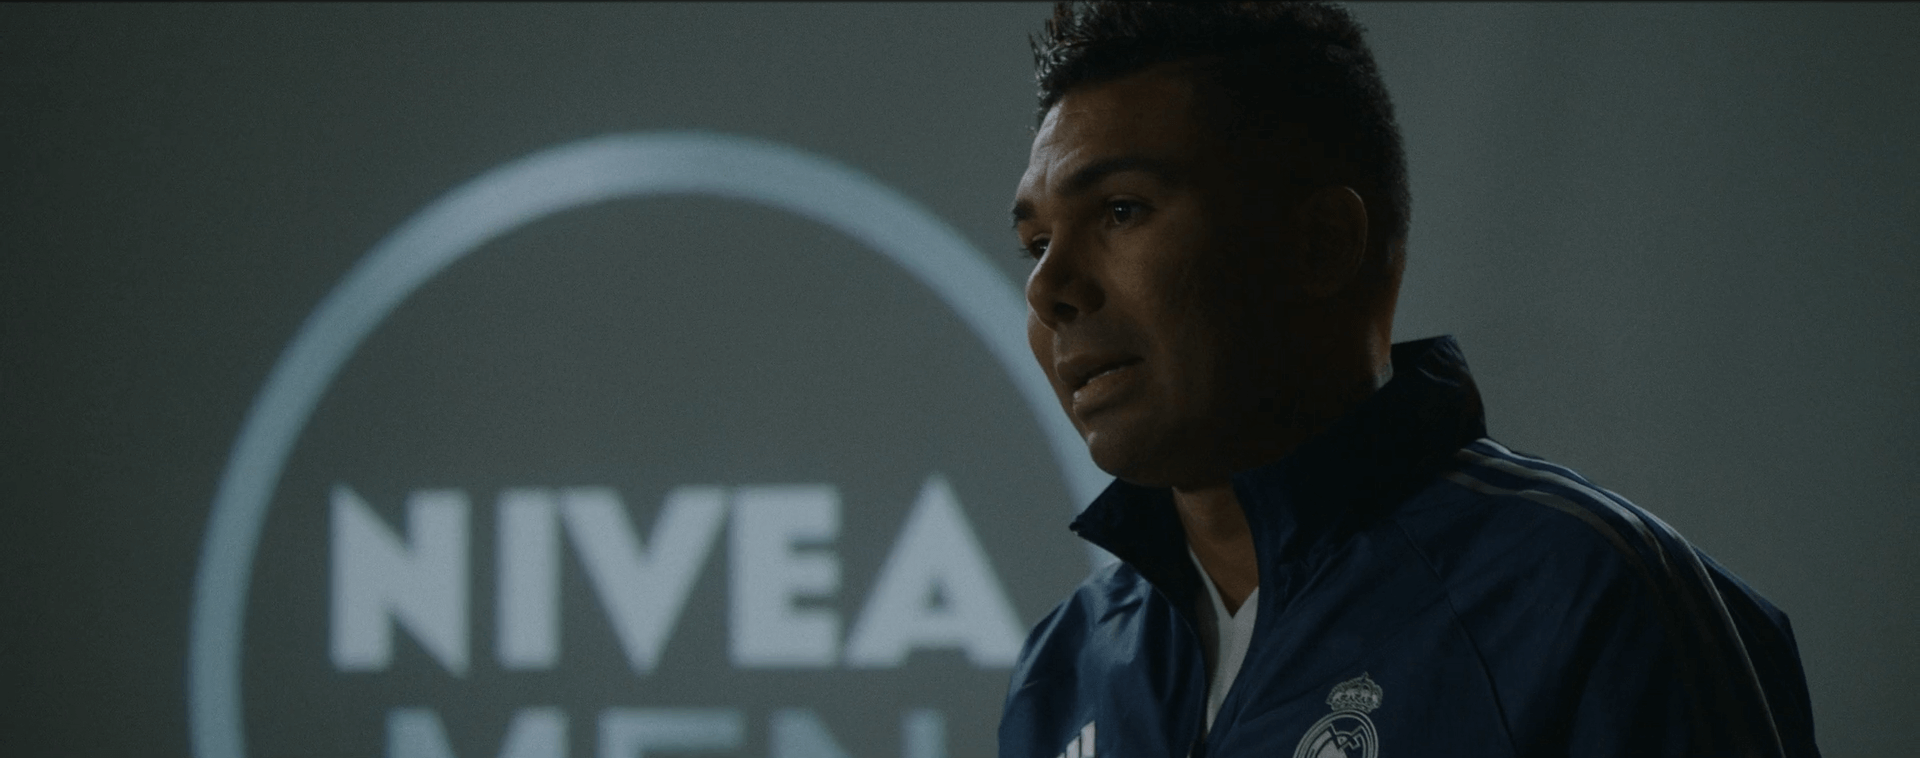 Nivea Legend - Real Madrid